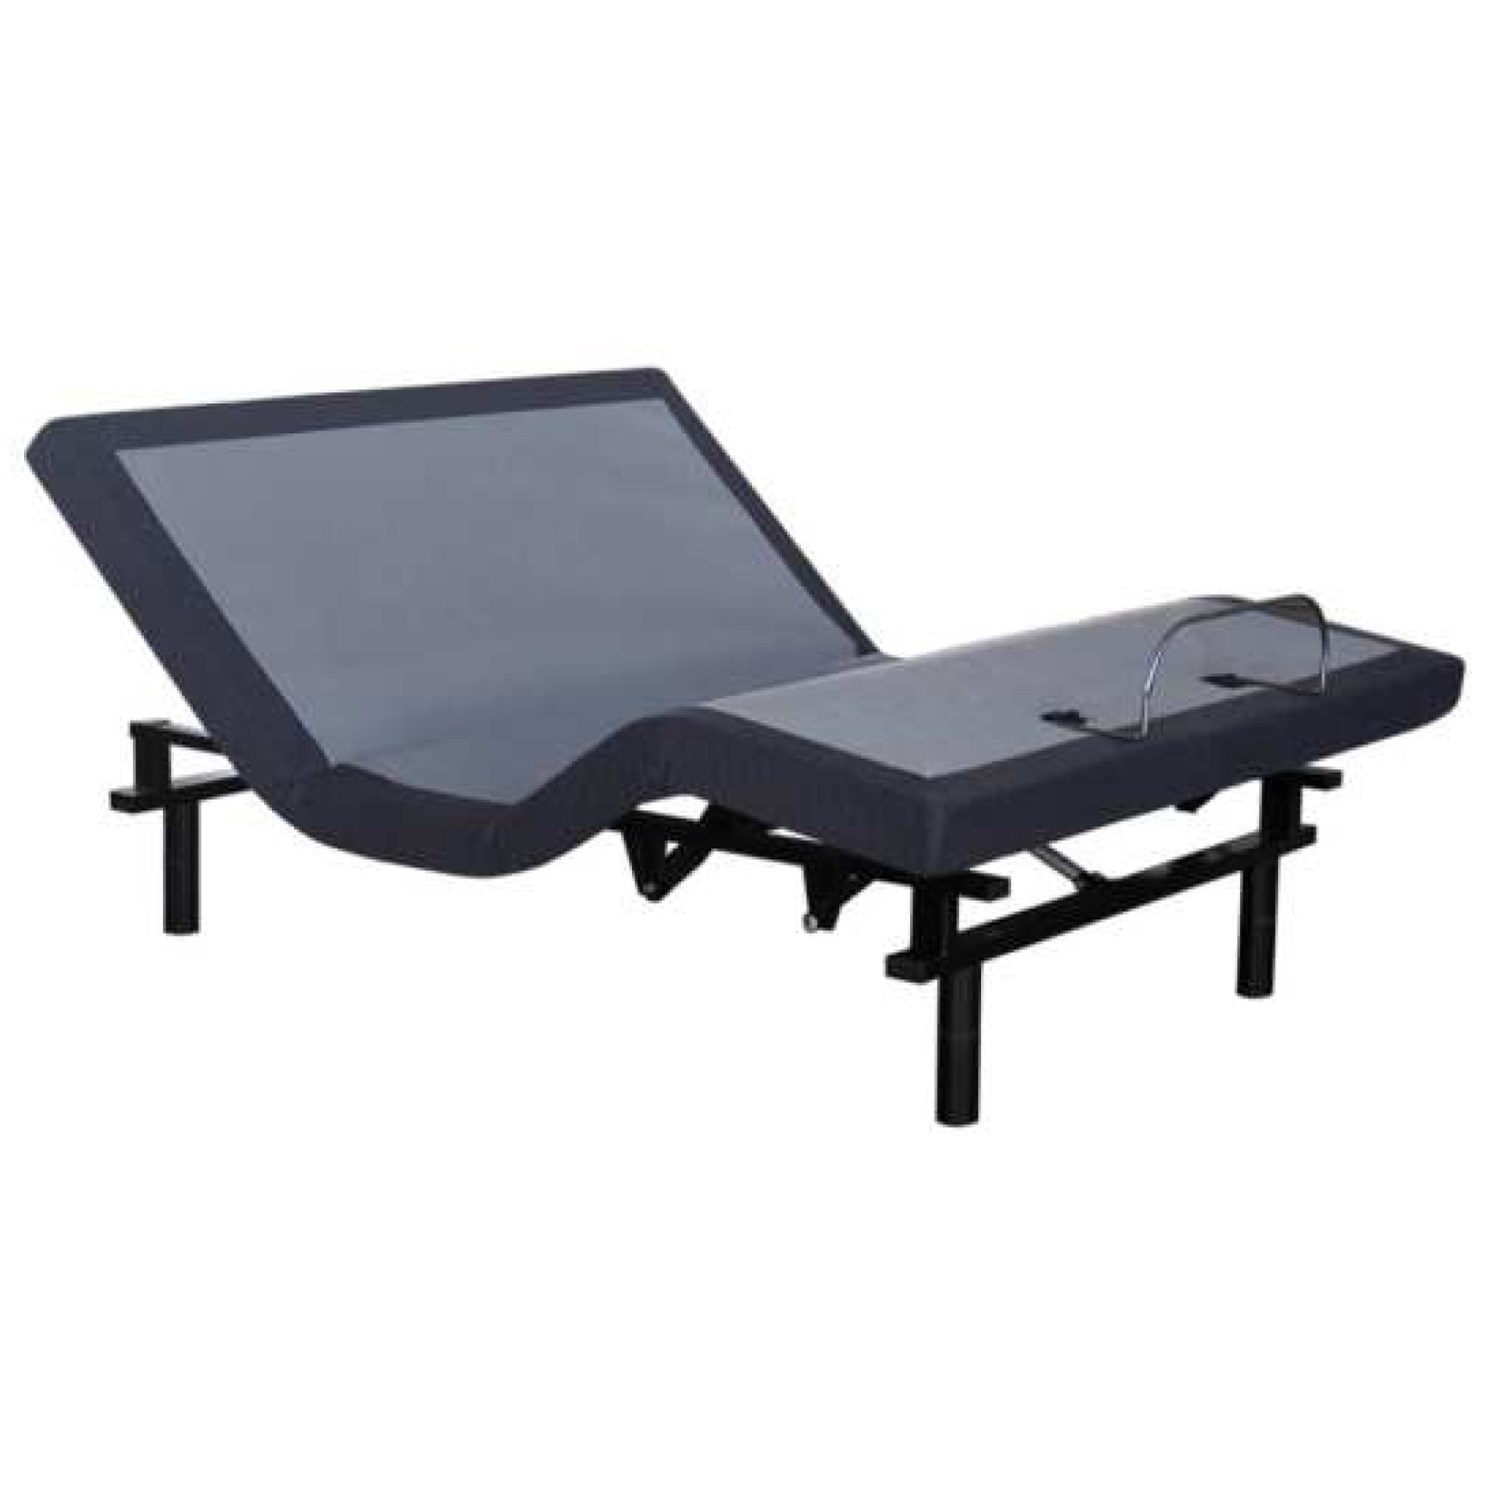 BT2500 Queen Adjustable Base by BedTech at Sparks HomeStore